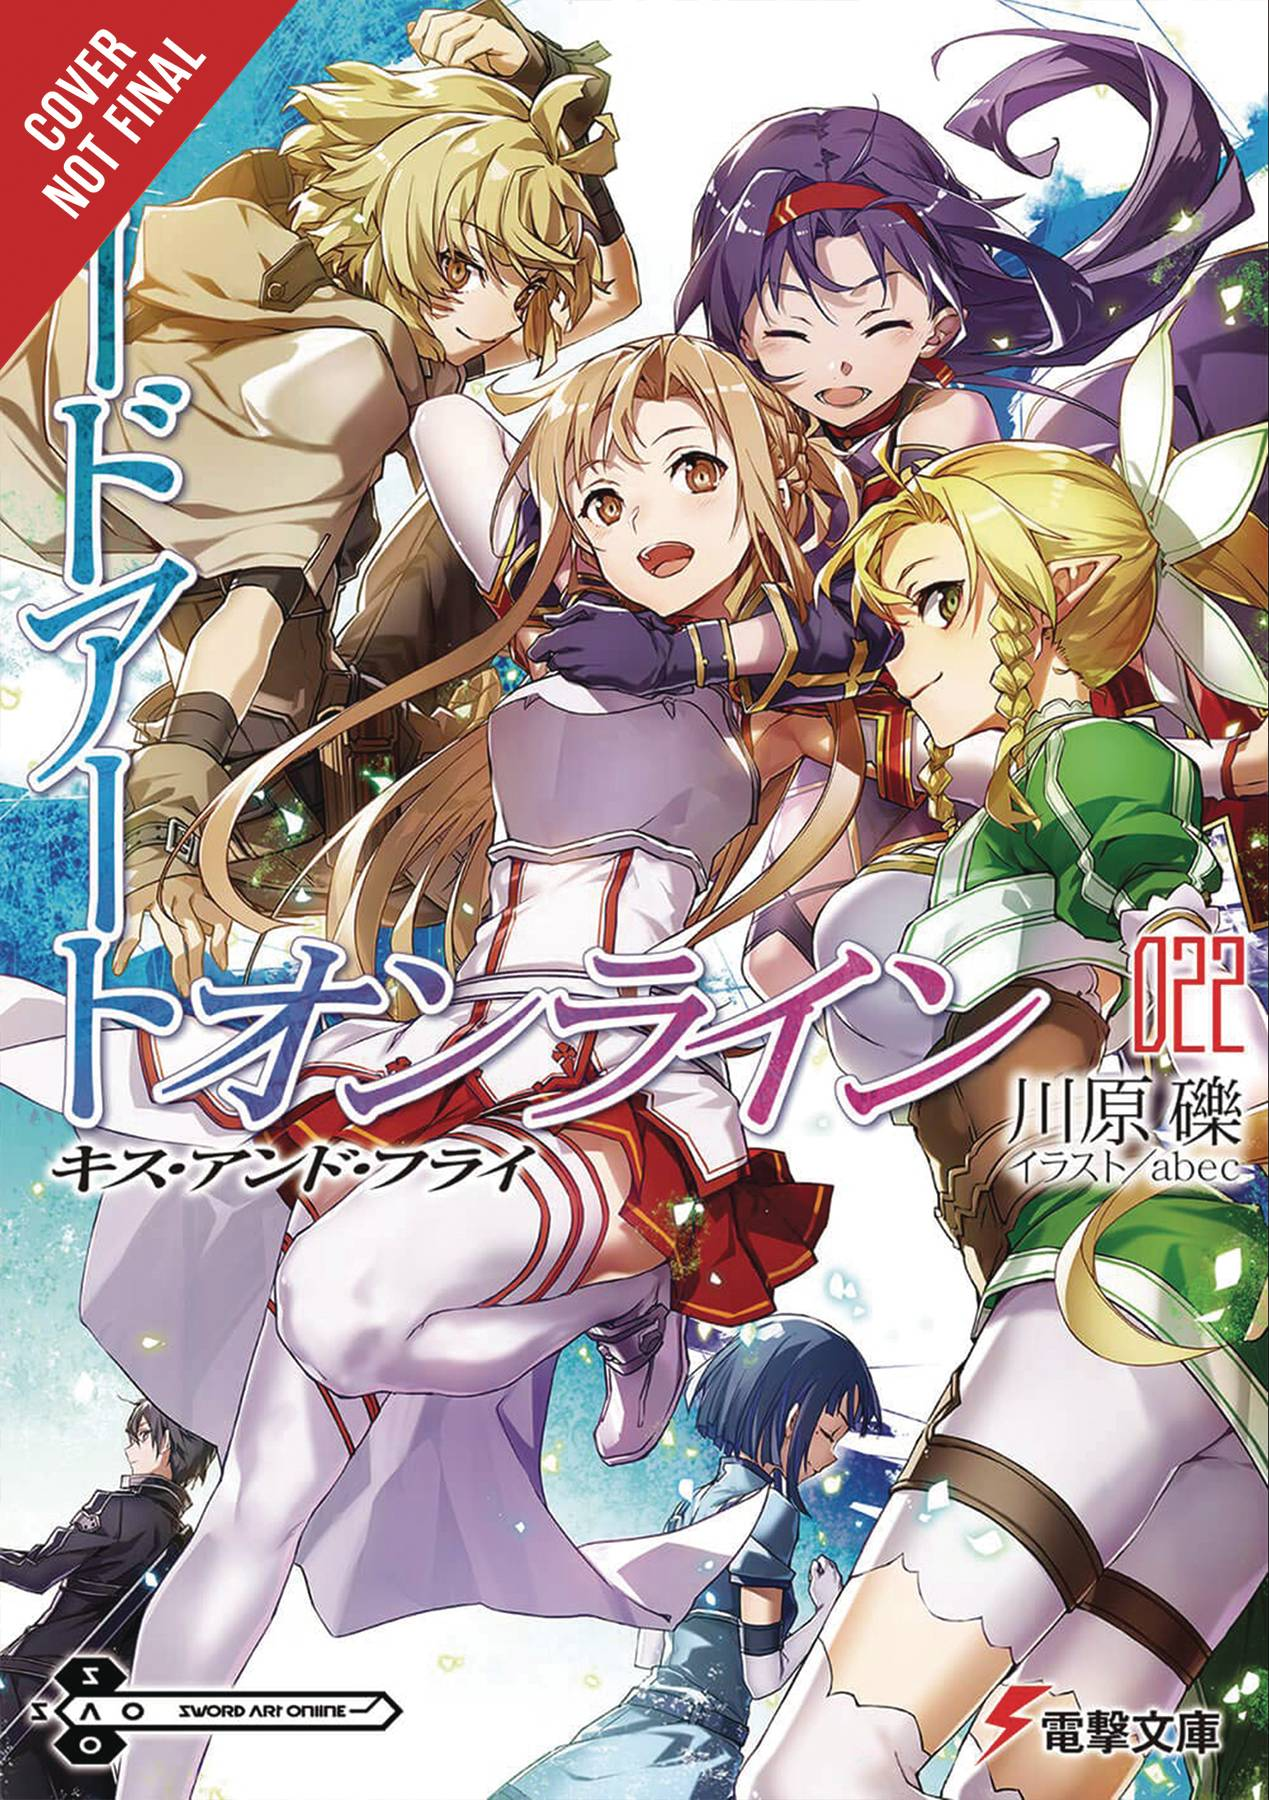 SWORD ART ONLINE LIGHT NOVEL SC 22